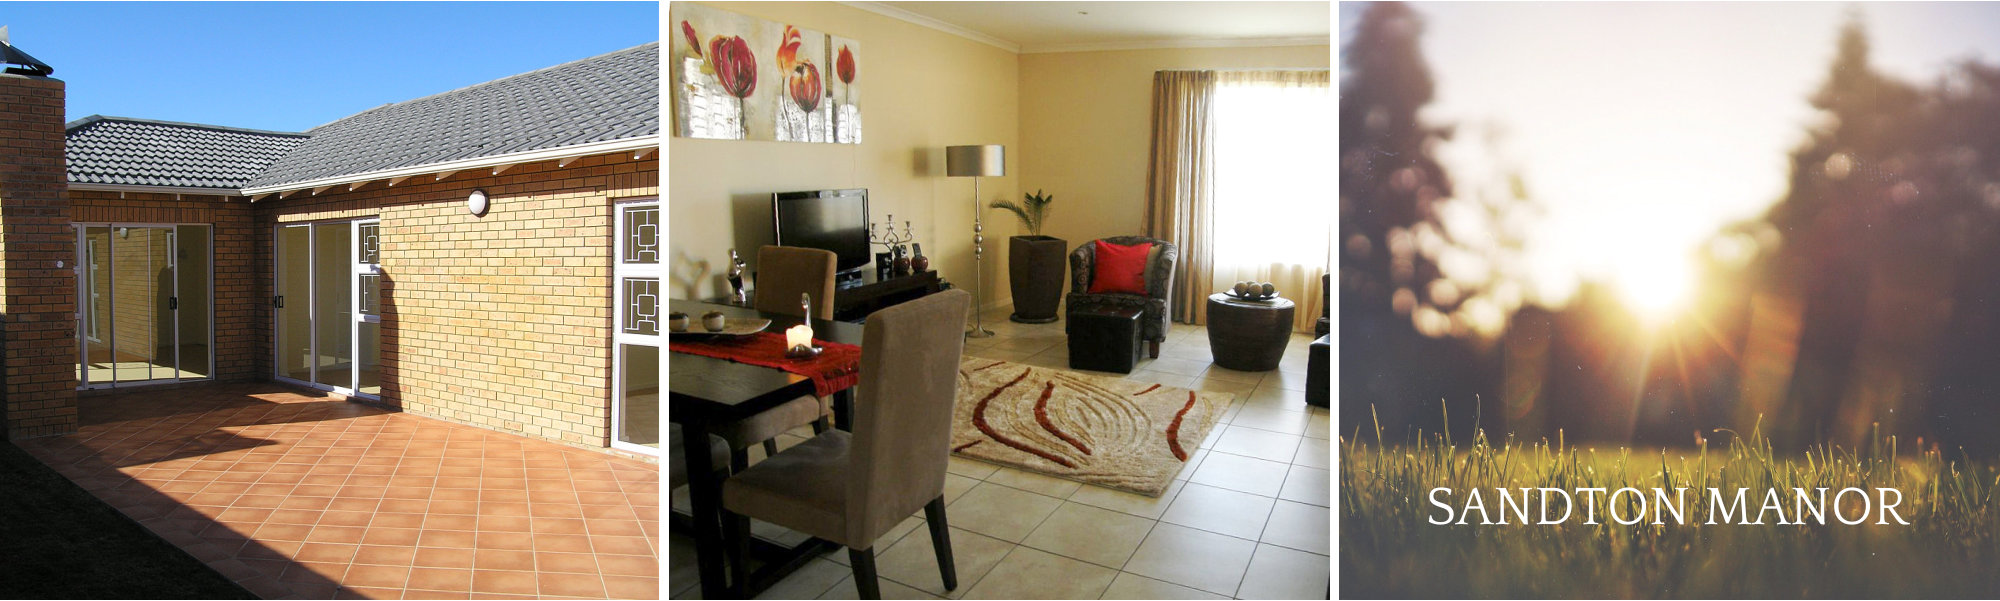 sandton_mannor_propery_townhouse